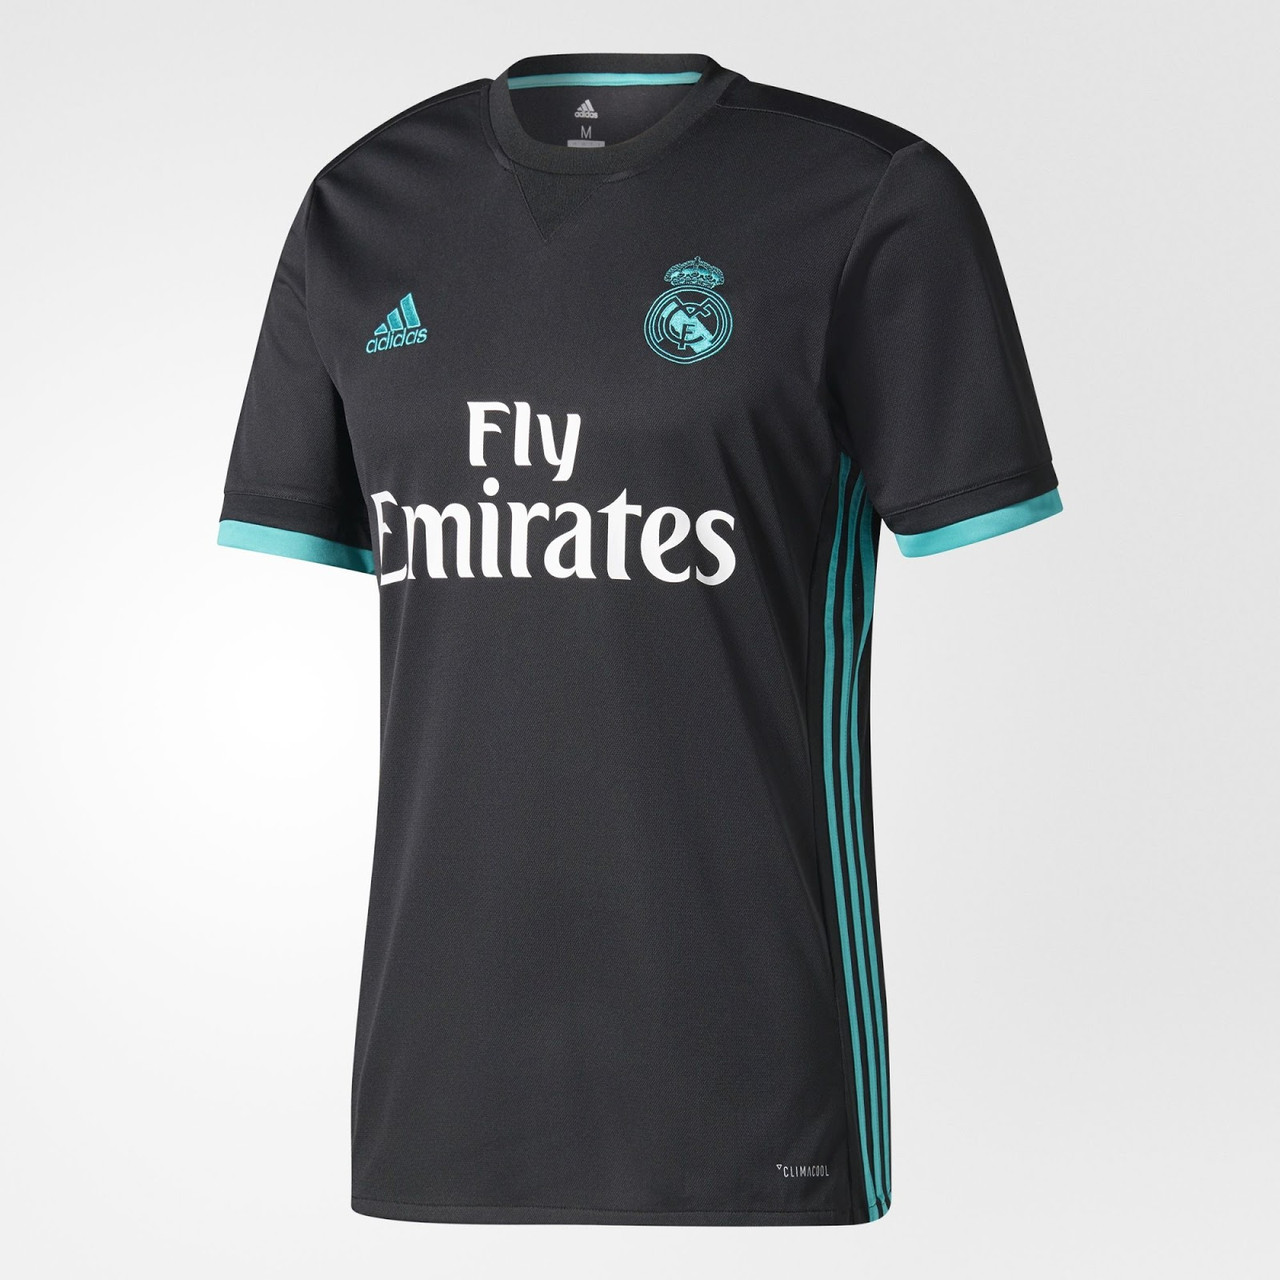 Футбольная форма Реал Мадрид (Real Madrid) 2017-2018 Выездная ... 31e97dc3910